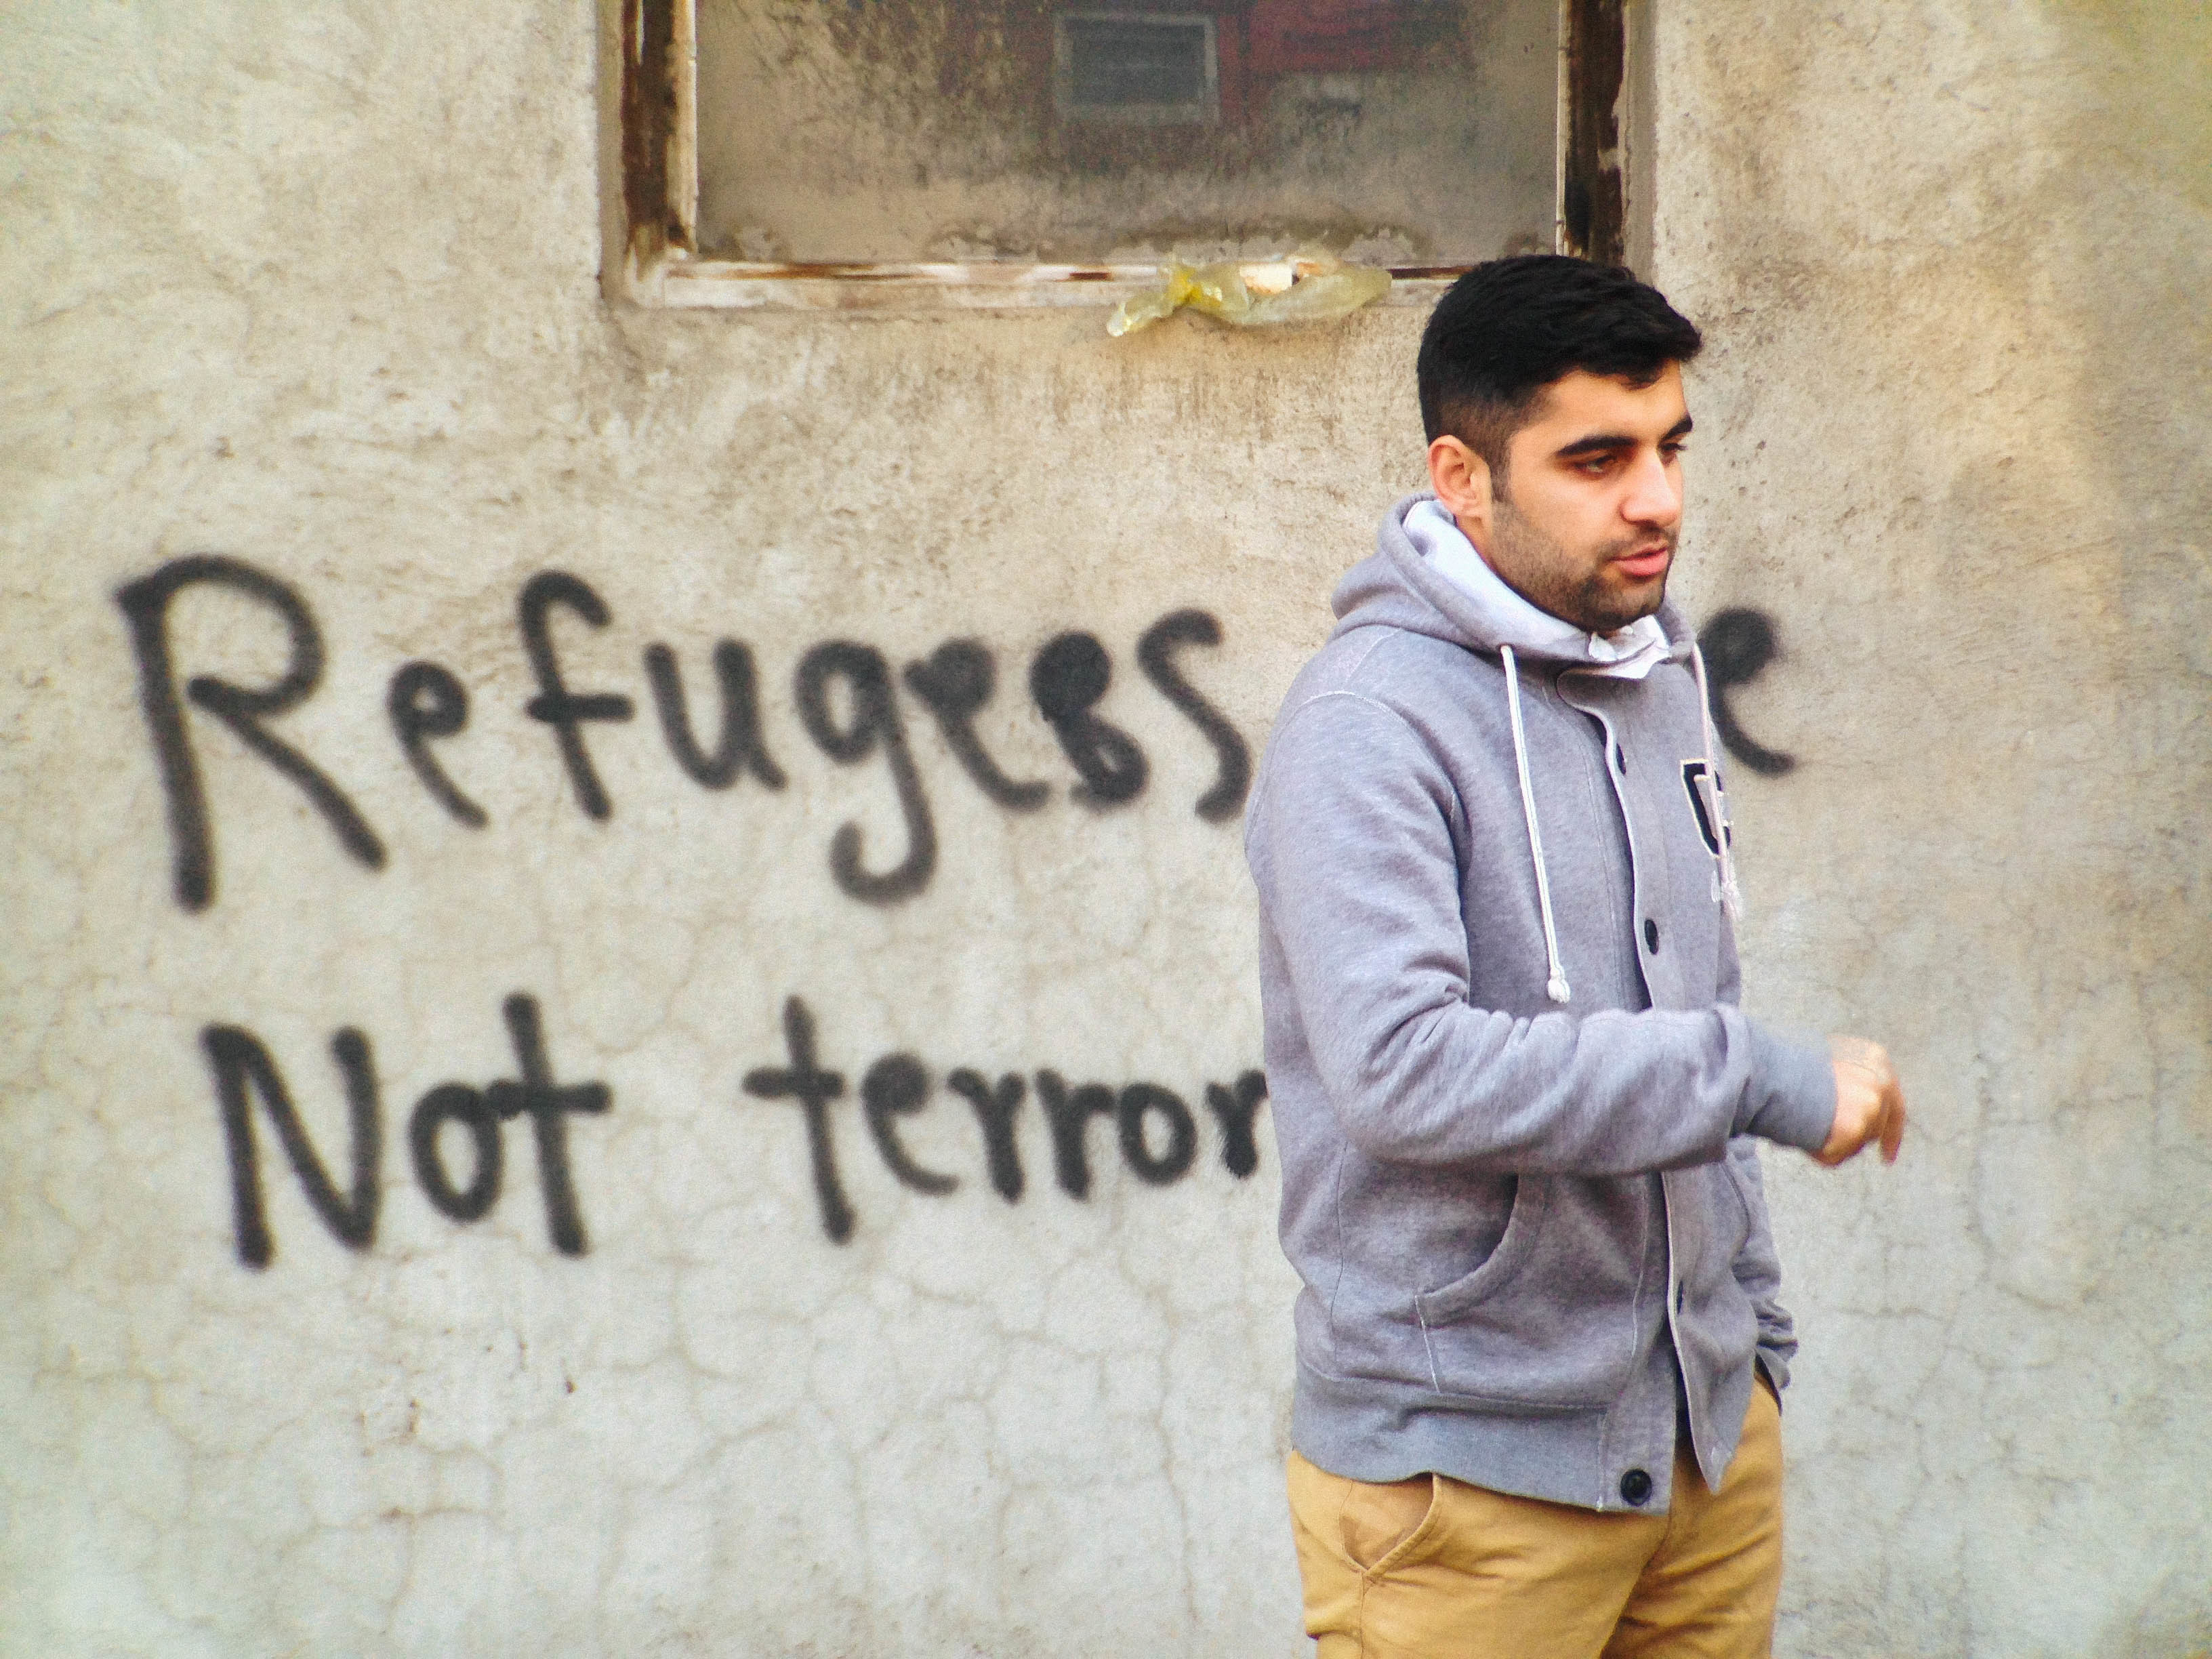 Refugees are not terrorists - Serbia